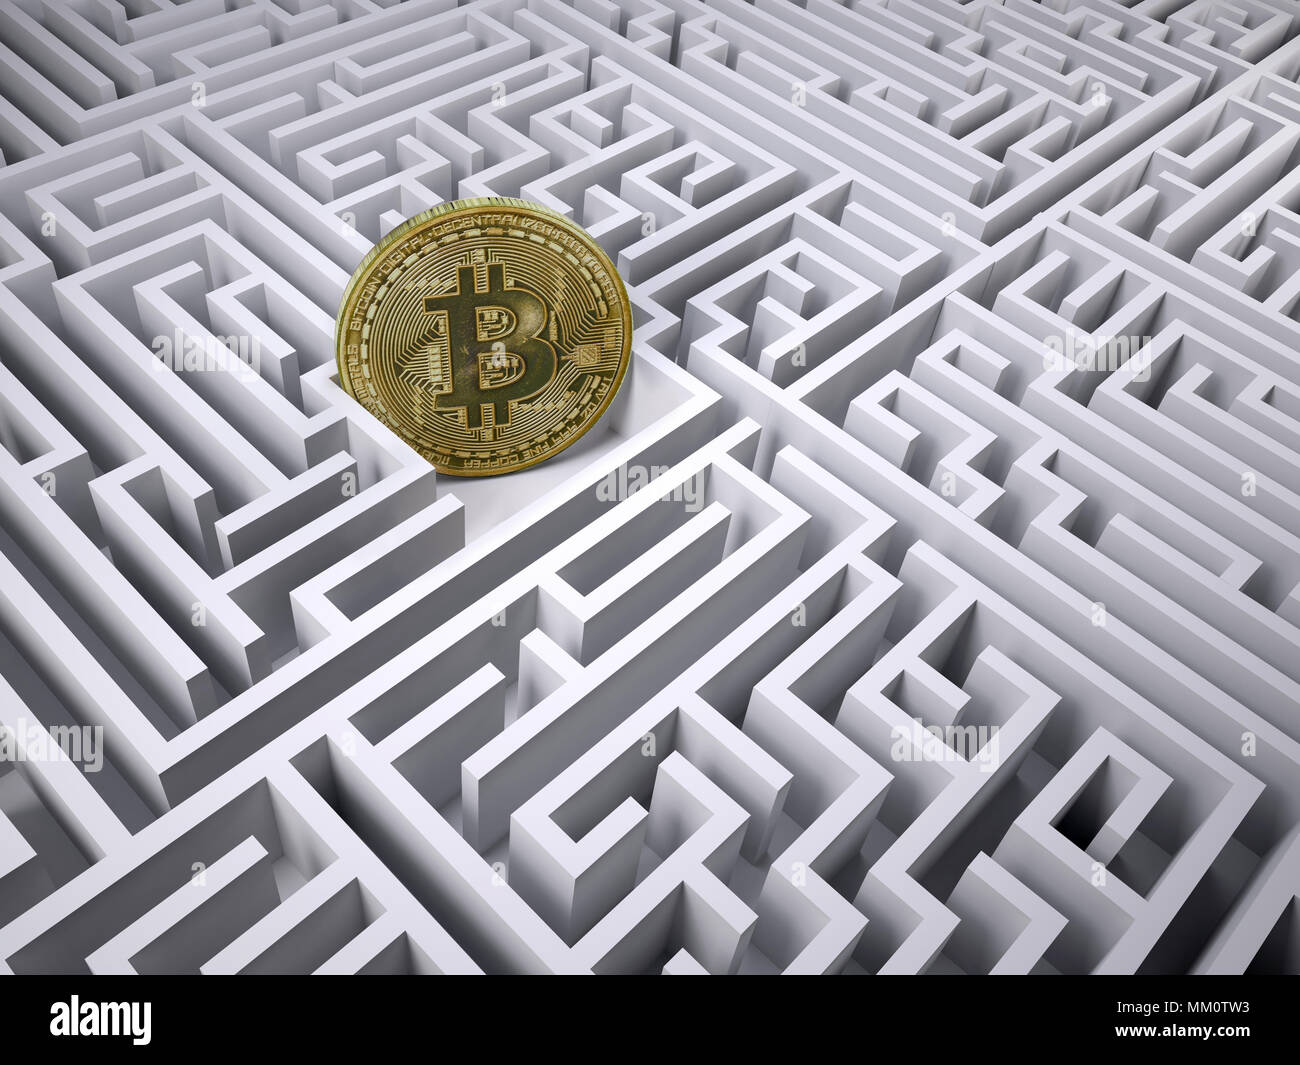 Bitcoin dans le Labyrinthe Labyrinthe, 3d illustration Photo Stock